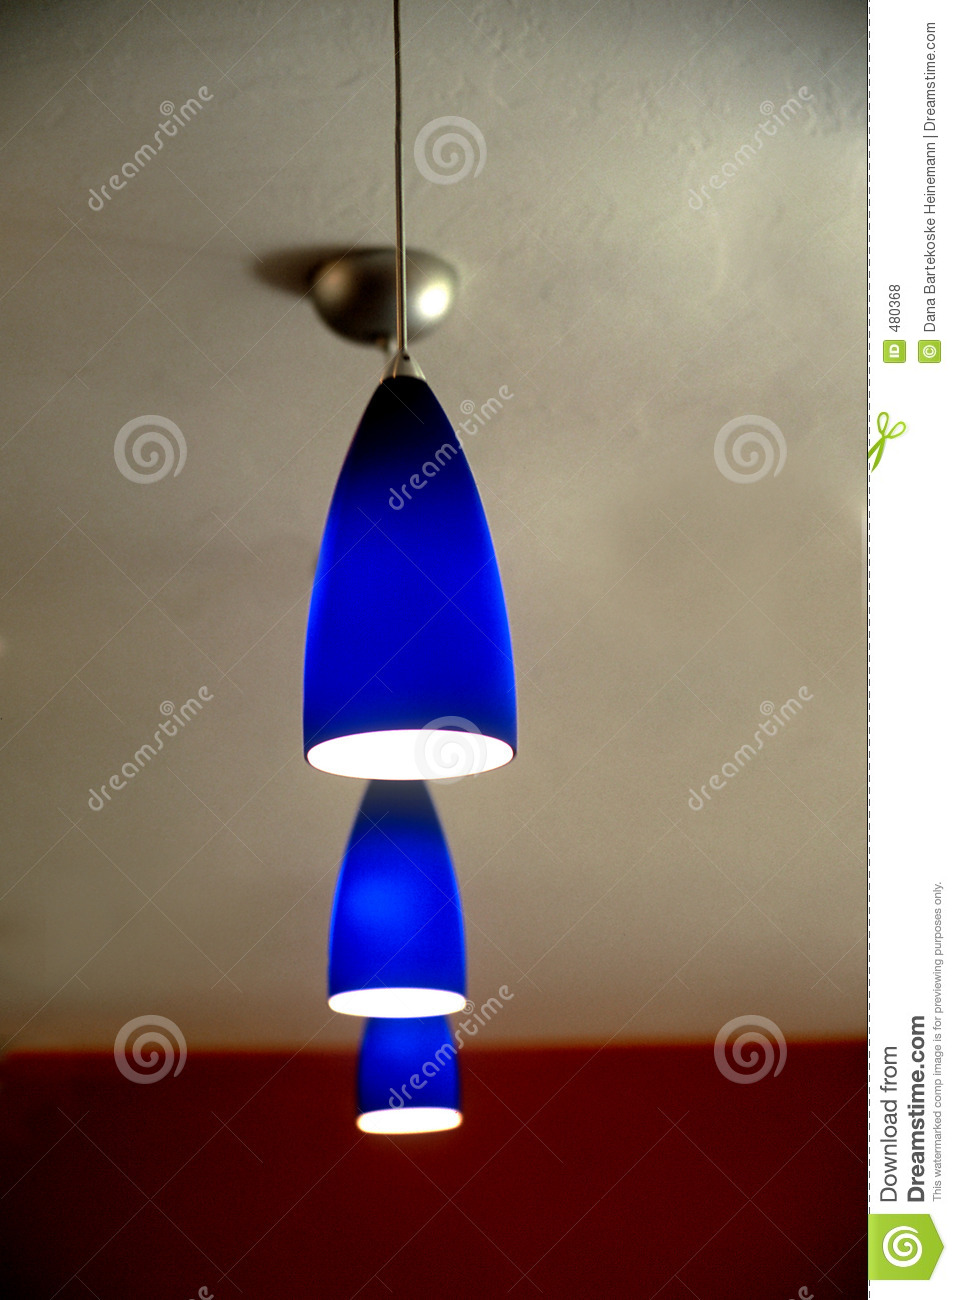 Hanging Lights Royalty Free Stock Photos Image 480368